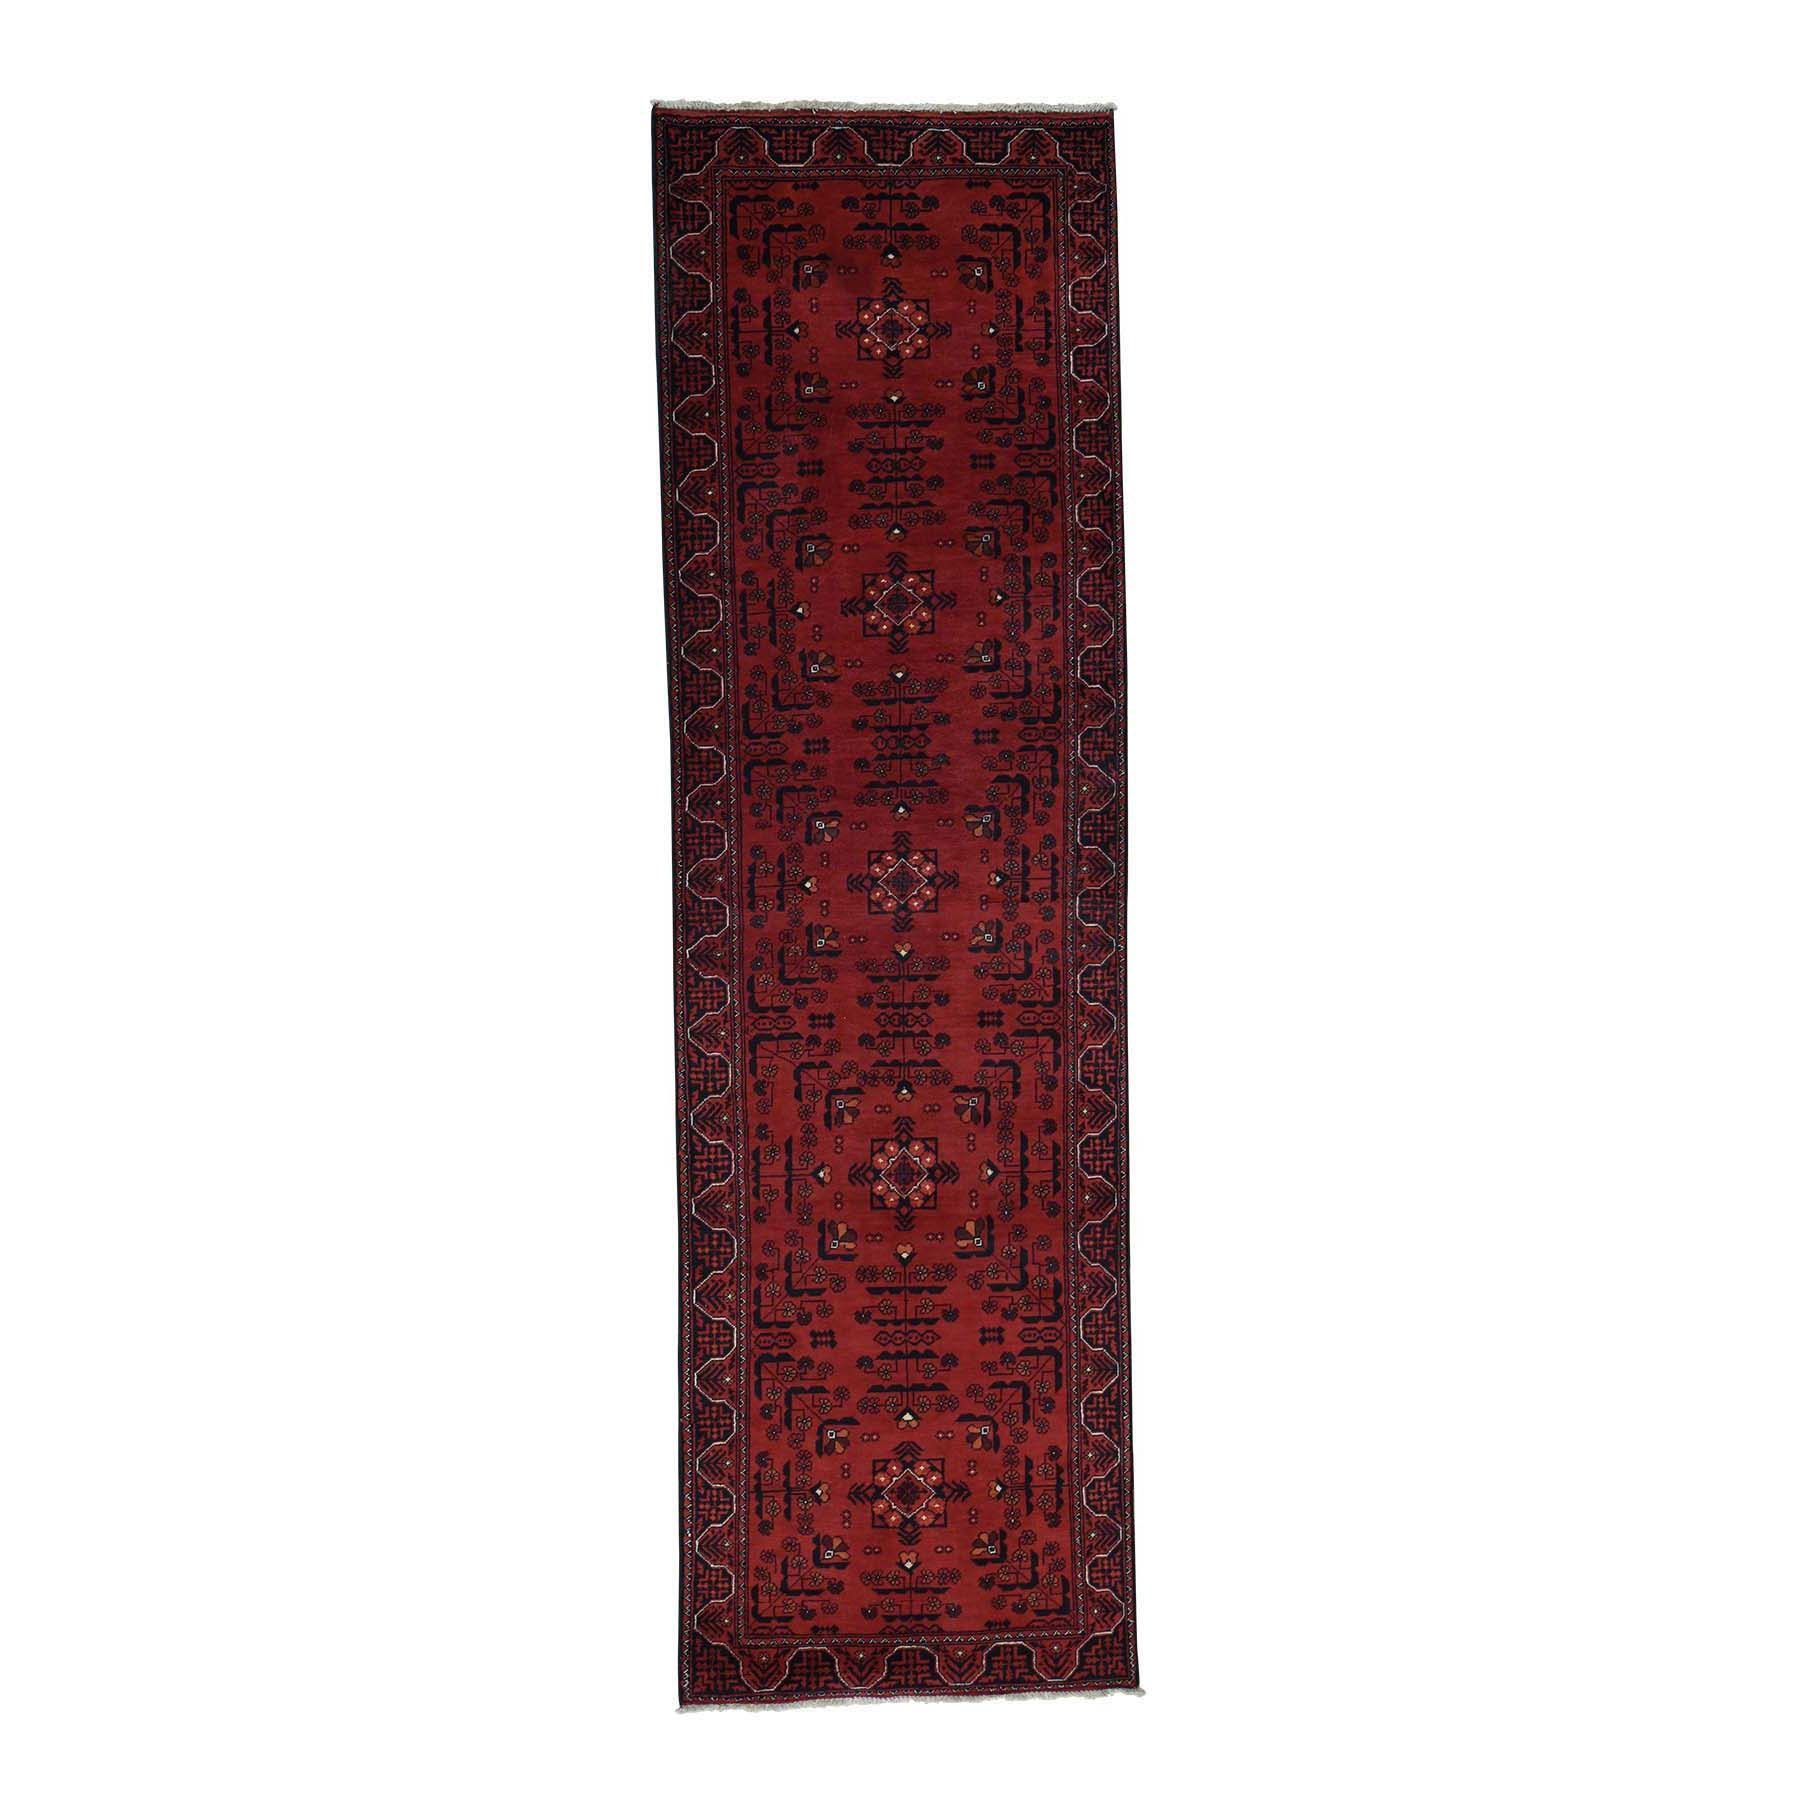 """1800getarug 100 Percent Wool Afghan Khamyab Hand-Knotted Runner Rug (2'10x9'6) (Exact Size: 2'10"""" x 9'6""""), Red, Size 3' x 10'"""